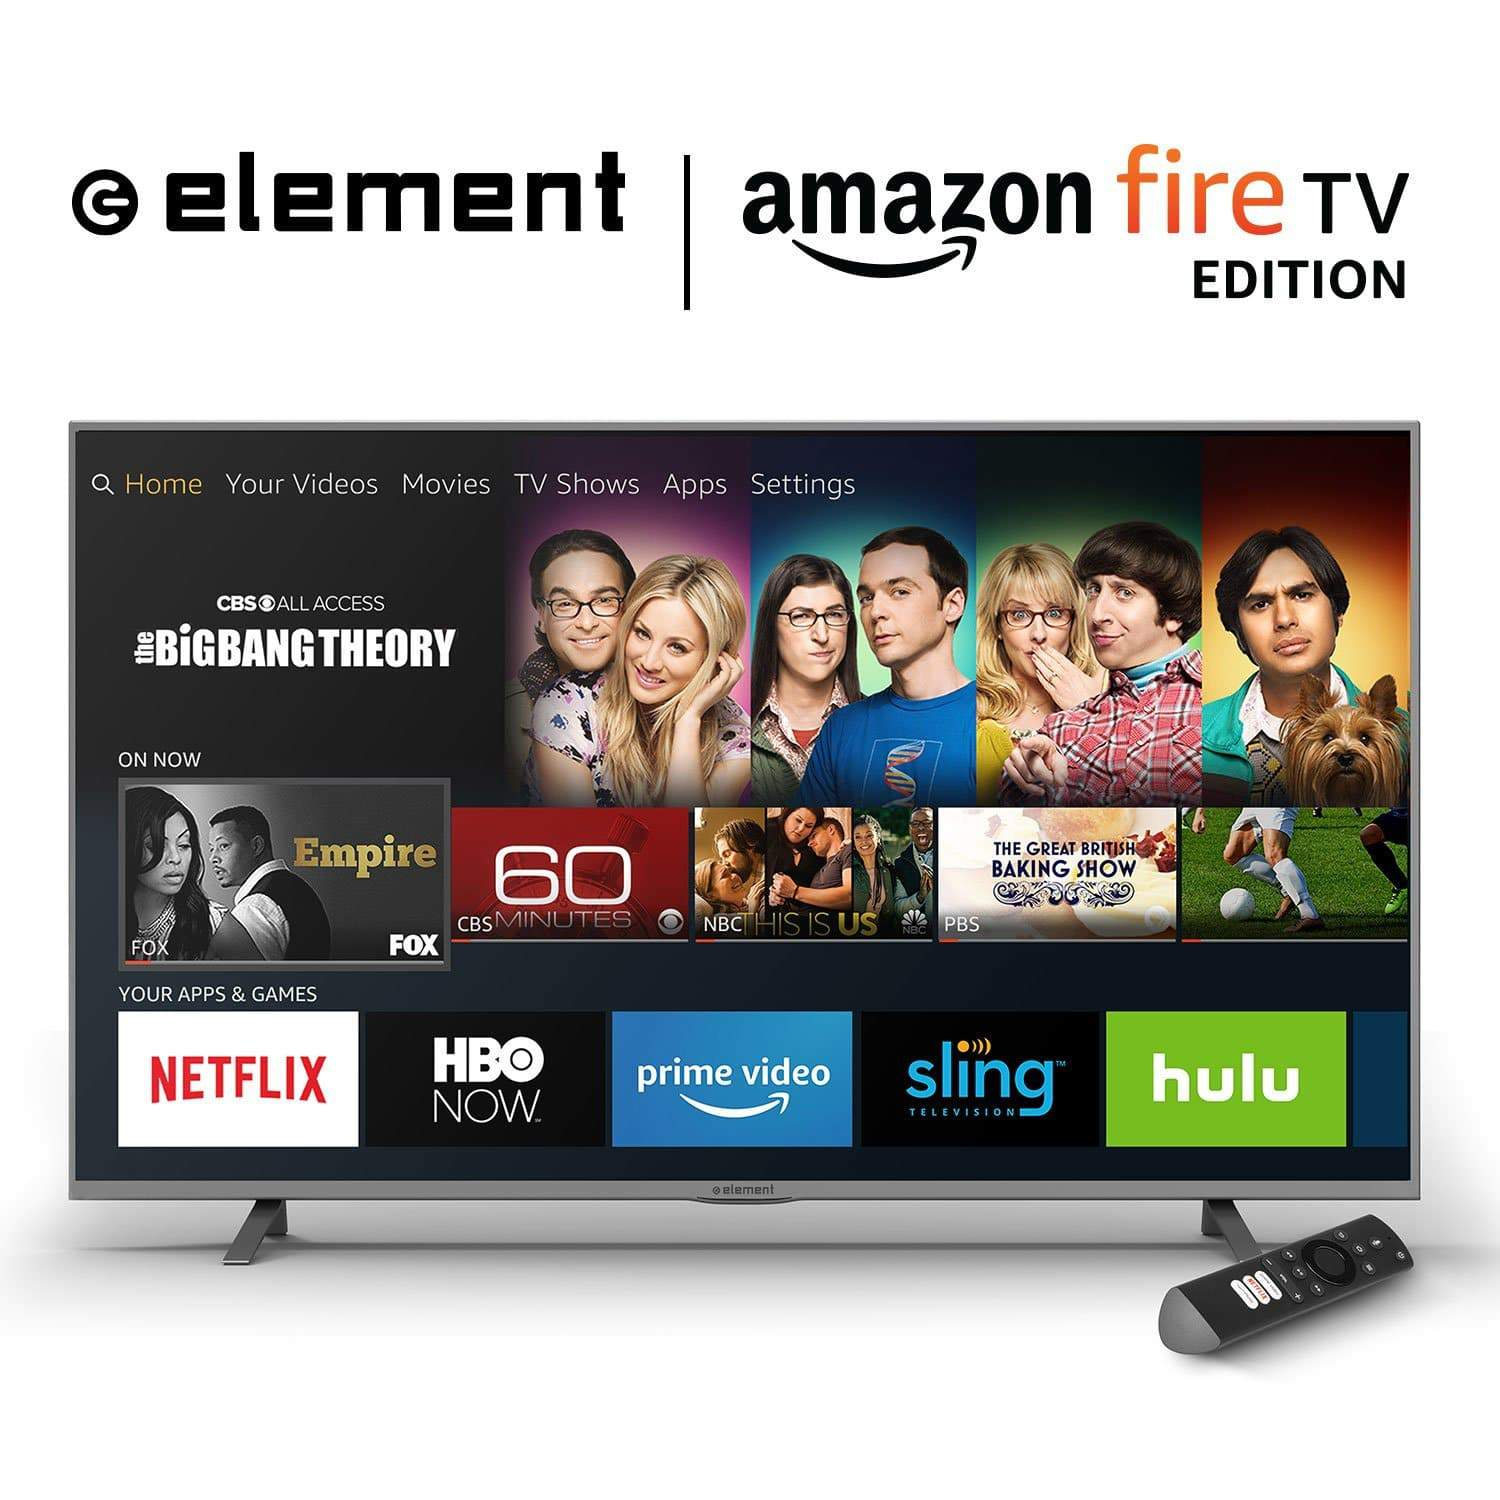 All-New Element 55-Inch 4K Ultra HD Smart LED TV - Amazon Fire TV Edition $399.99 Prime Day